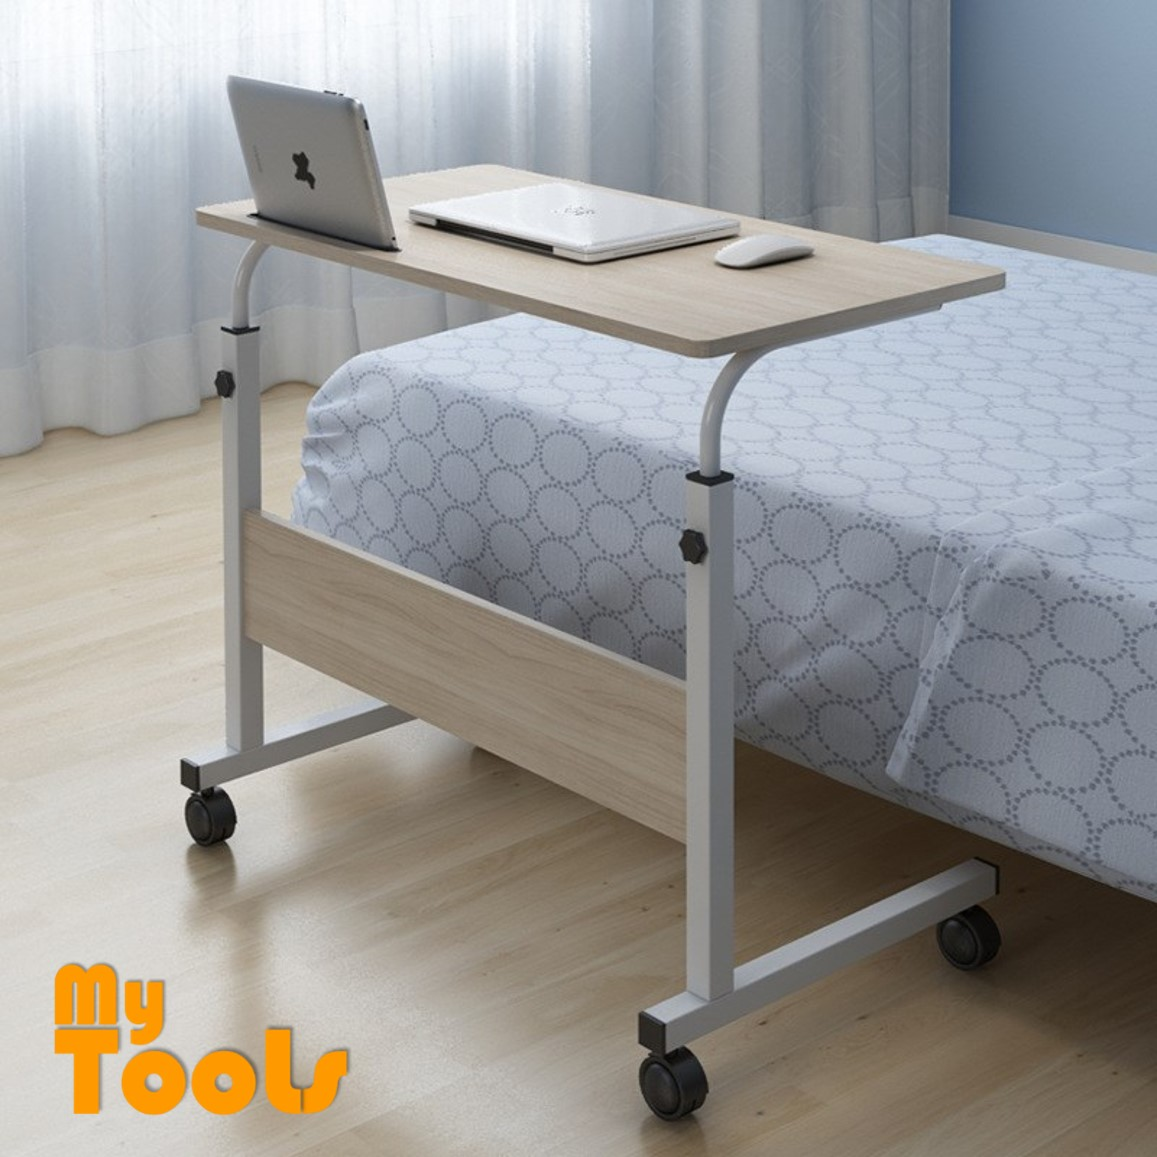 Mytools Bed Lazy Computer Table Caster Wheel Adjustable Simple Office Table Desk